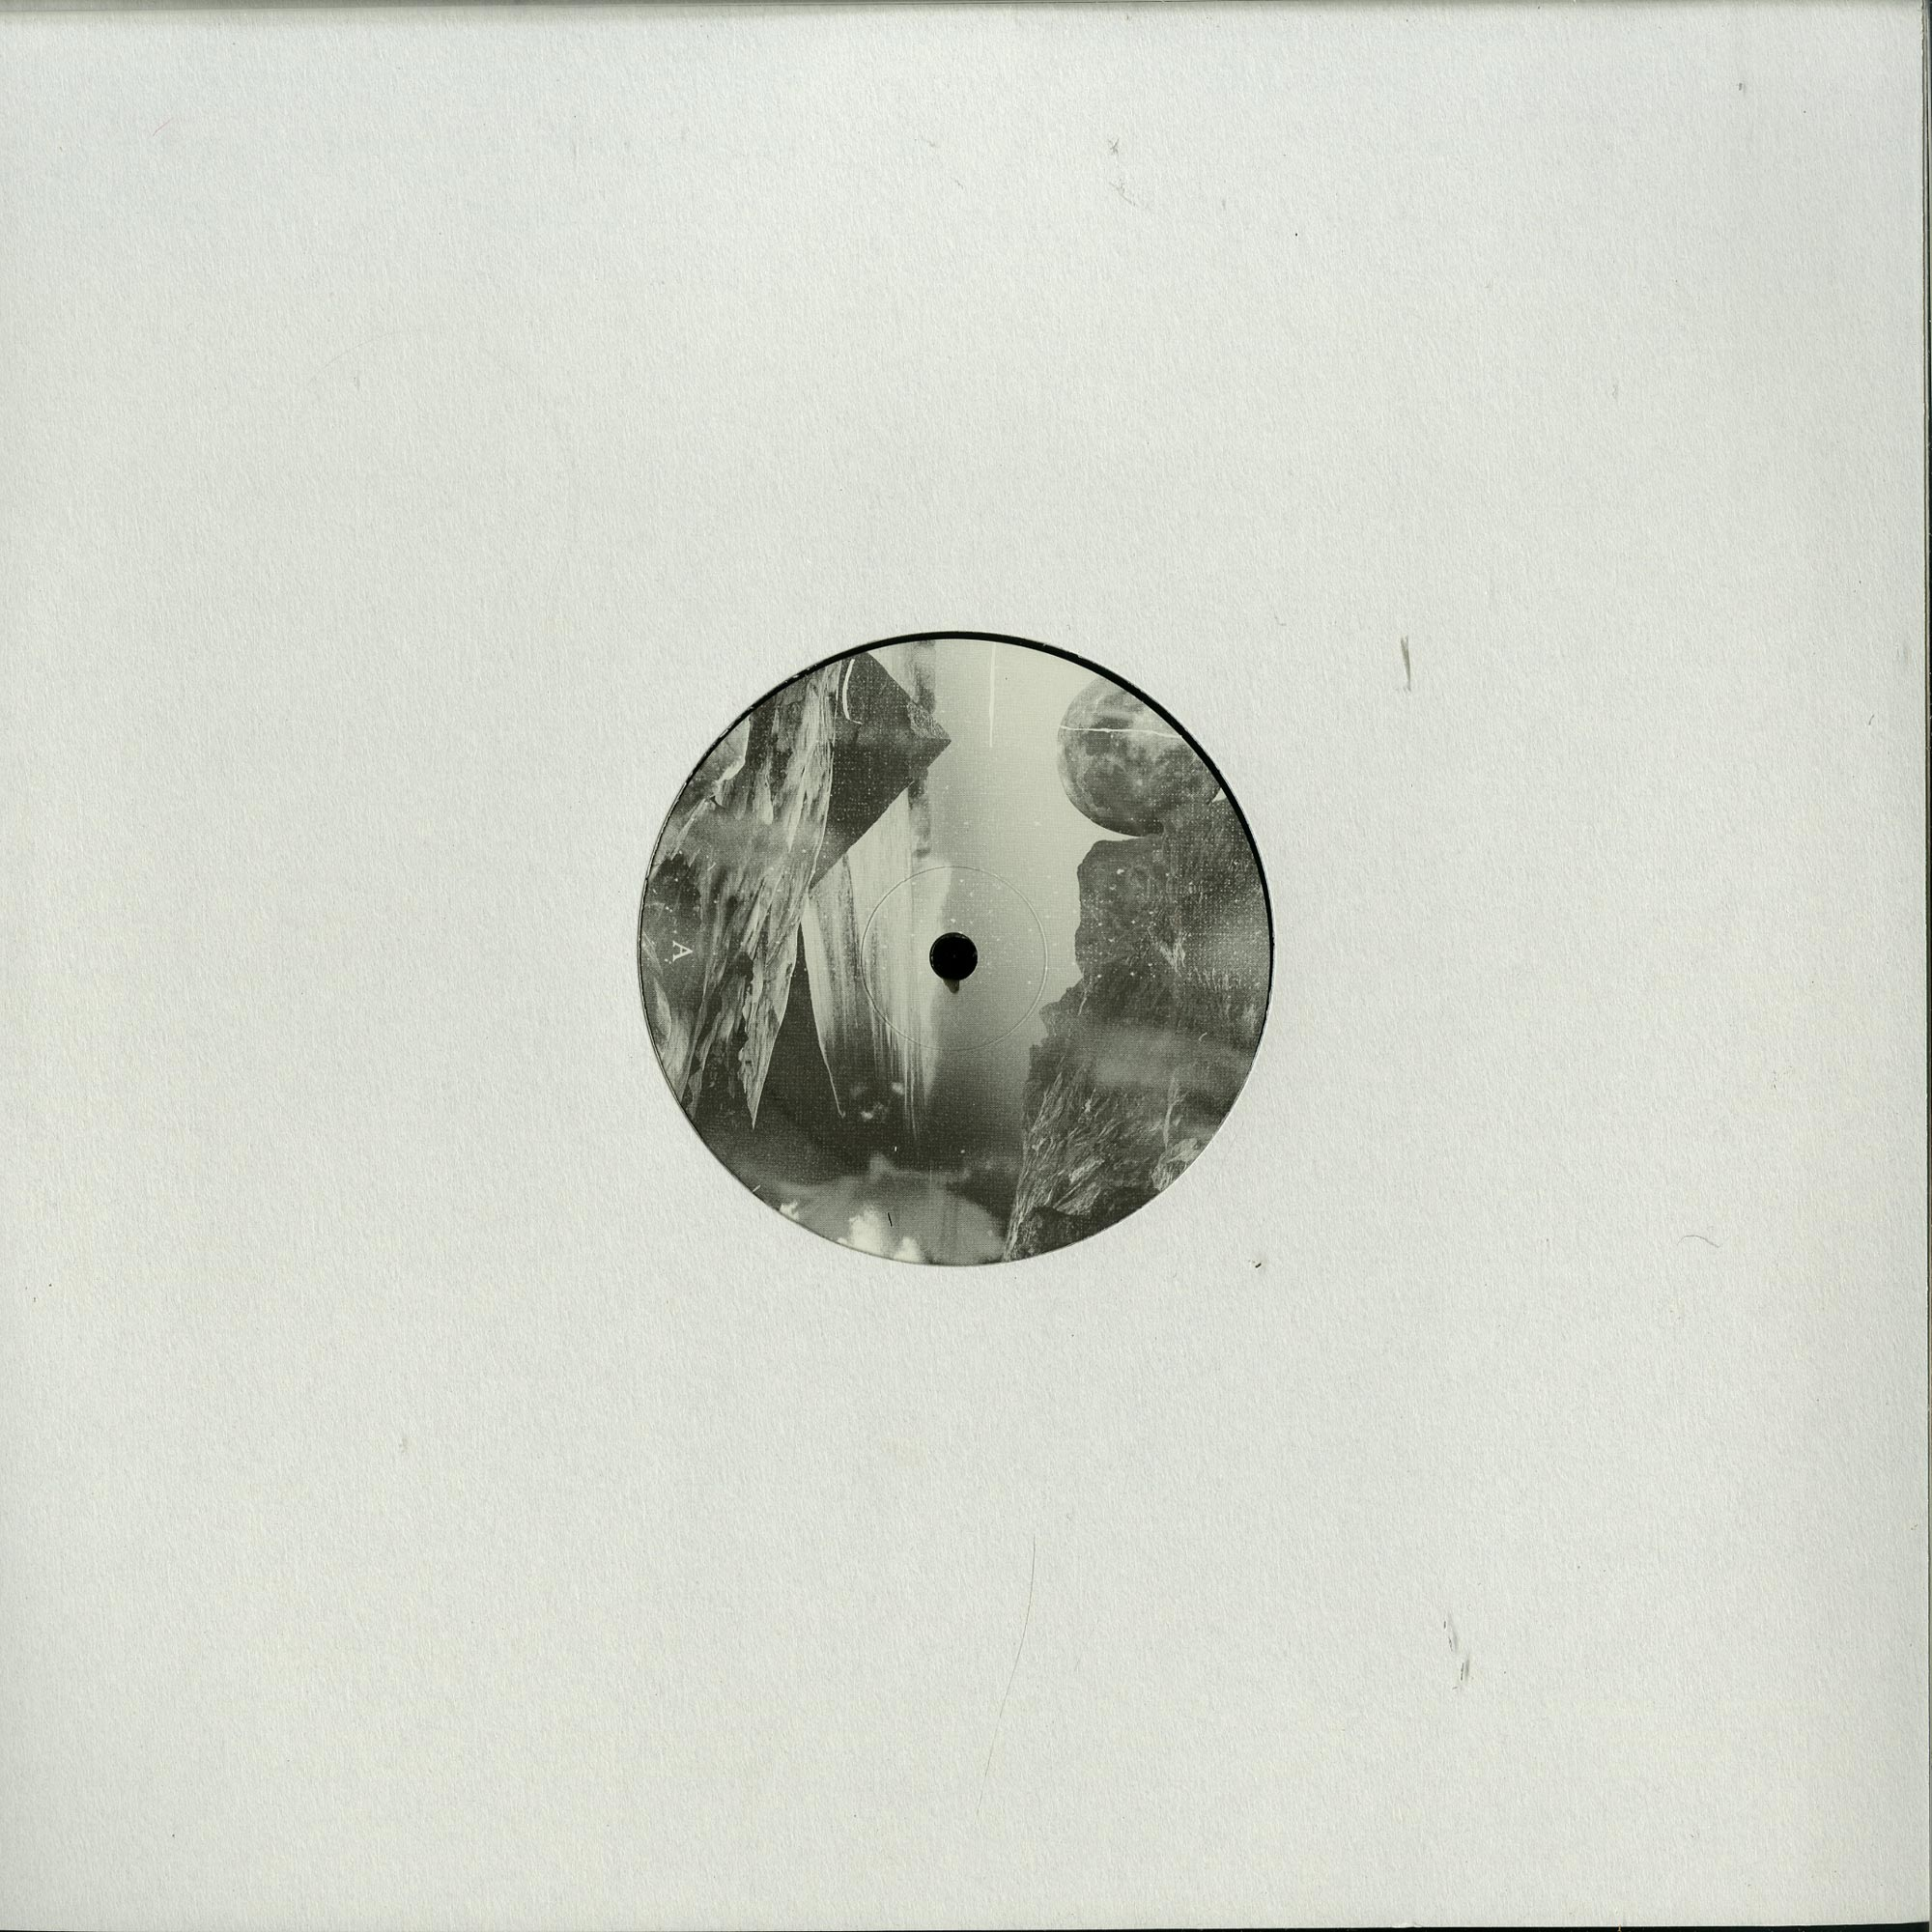 Lewis Fautzi / Eric Fetcher / Reeko / Shifted - UNKNOWN LANDSCAPES SELECTED 06